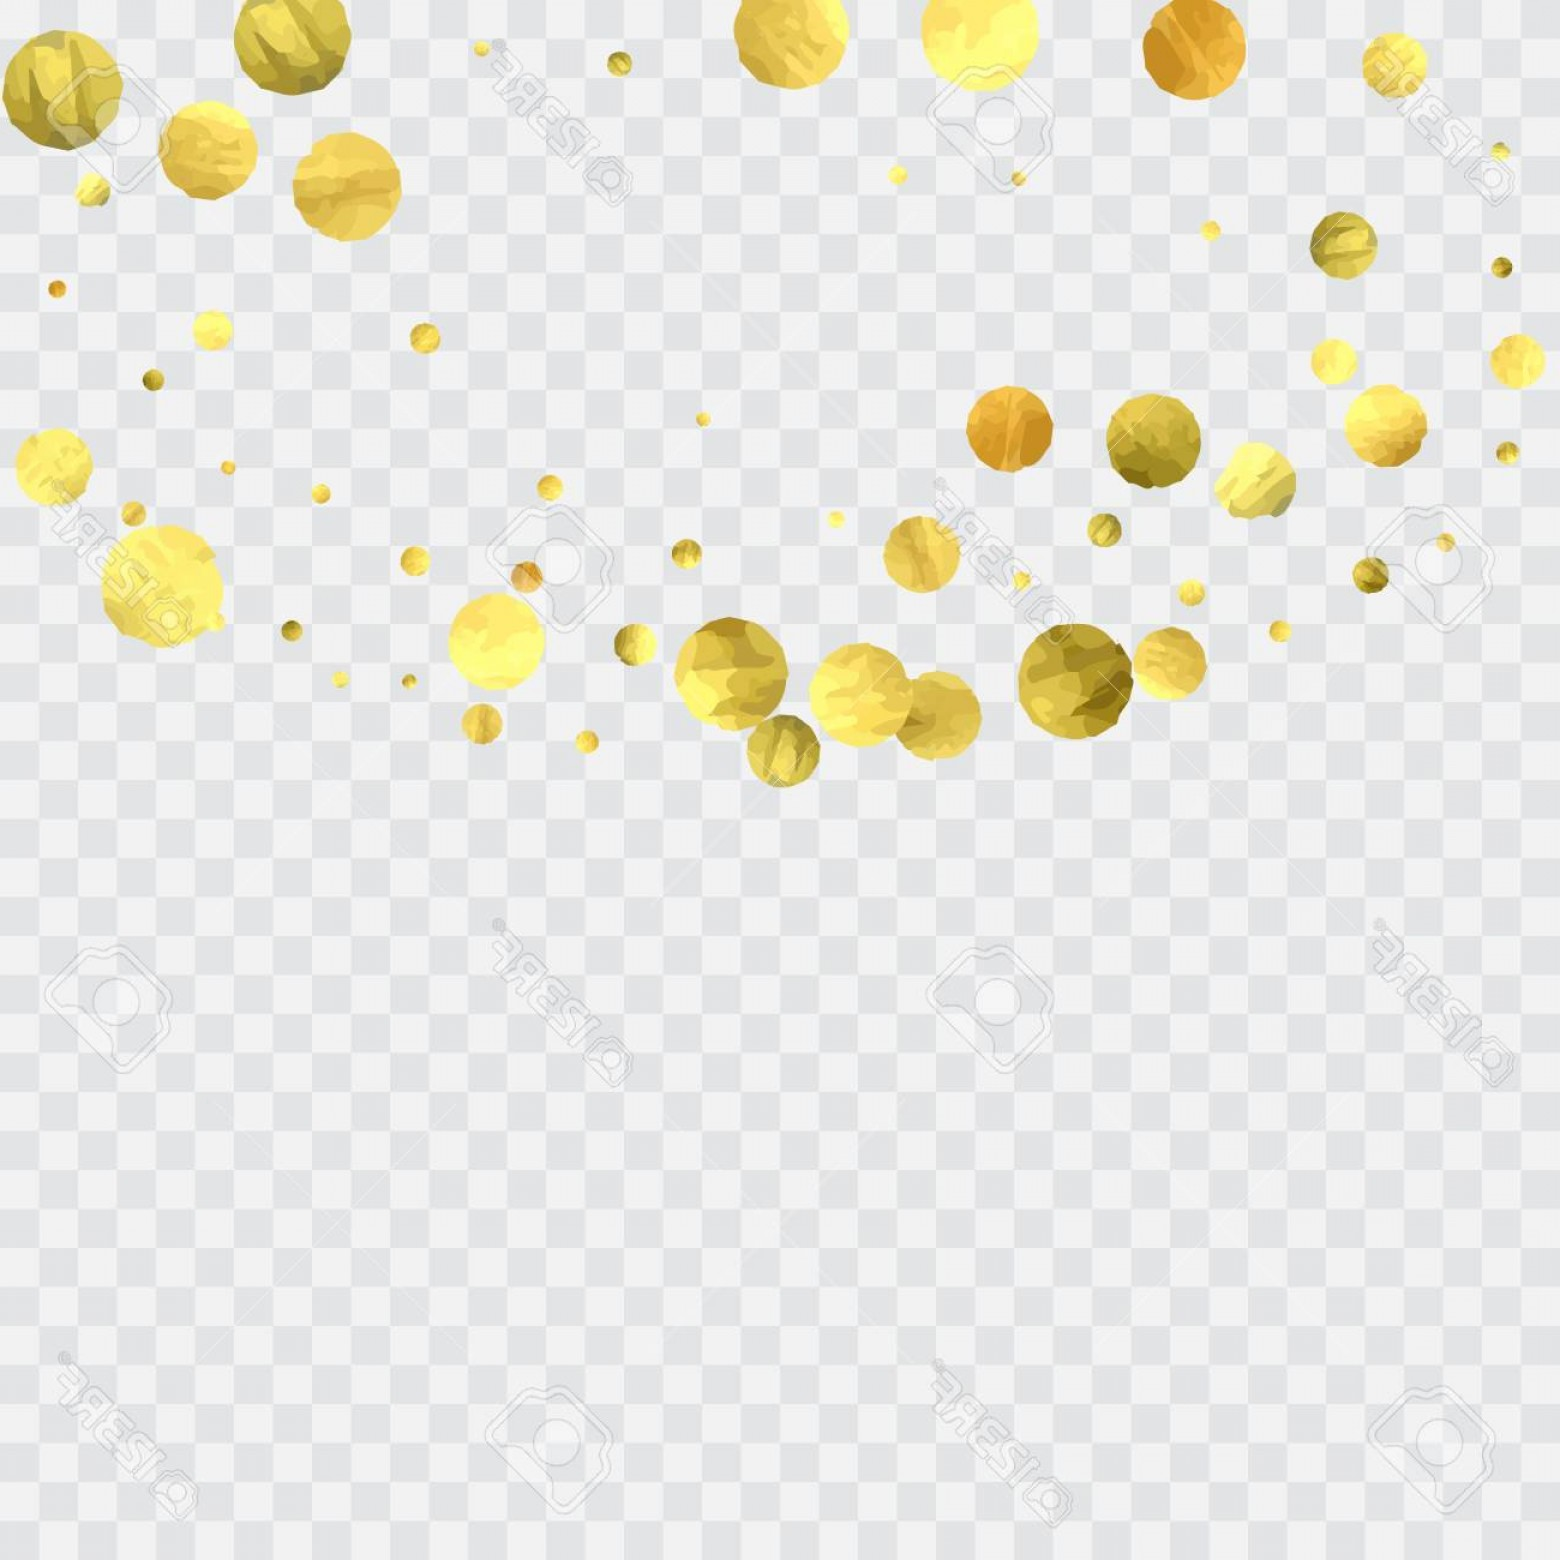 Invite Gold Dots Vector Glittter: Photostock Vector Round Gold Confetti Celebrate Background Watercolor Golden Sparkles And Dots Voucher Backdrop Luxury